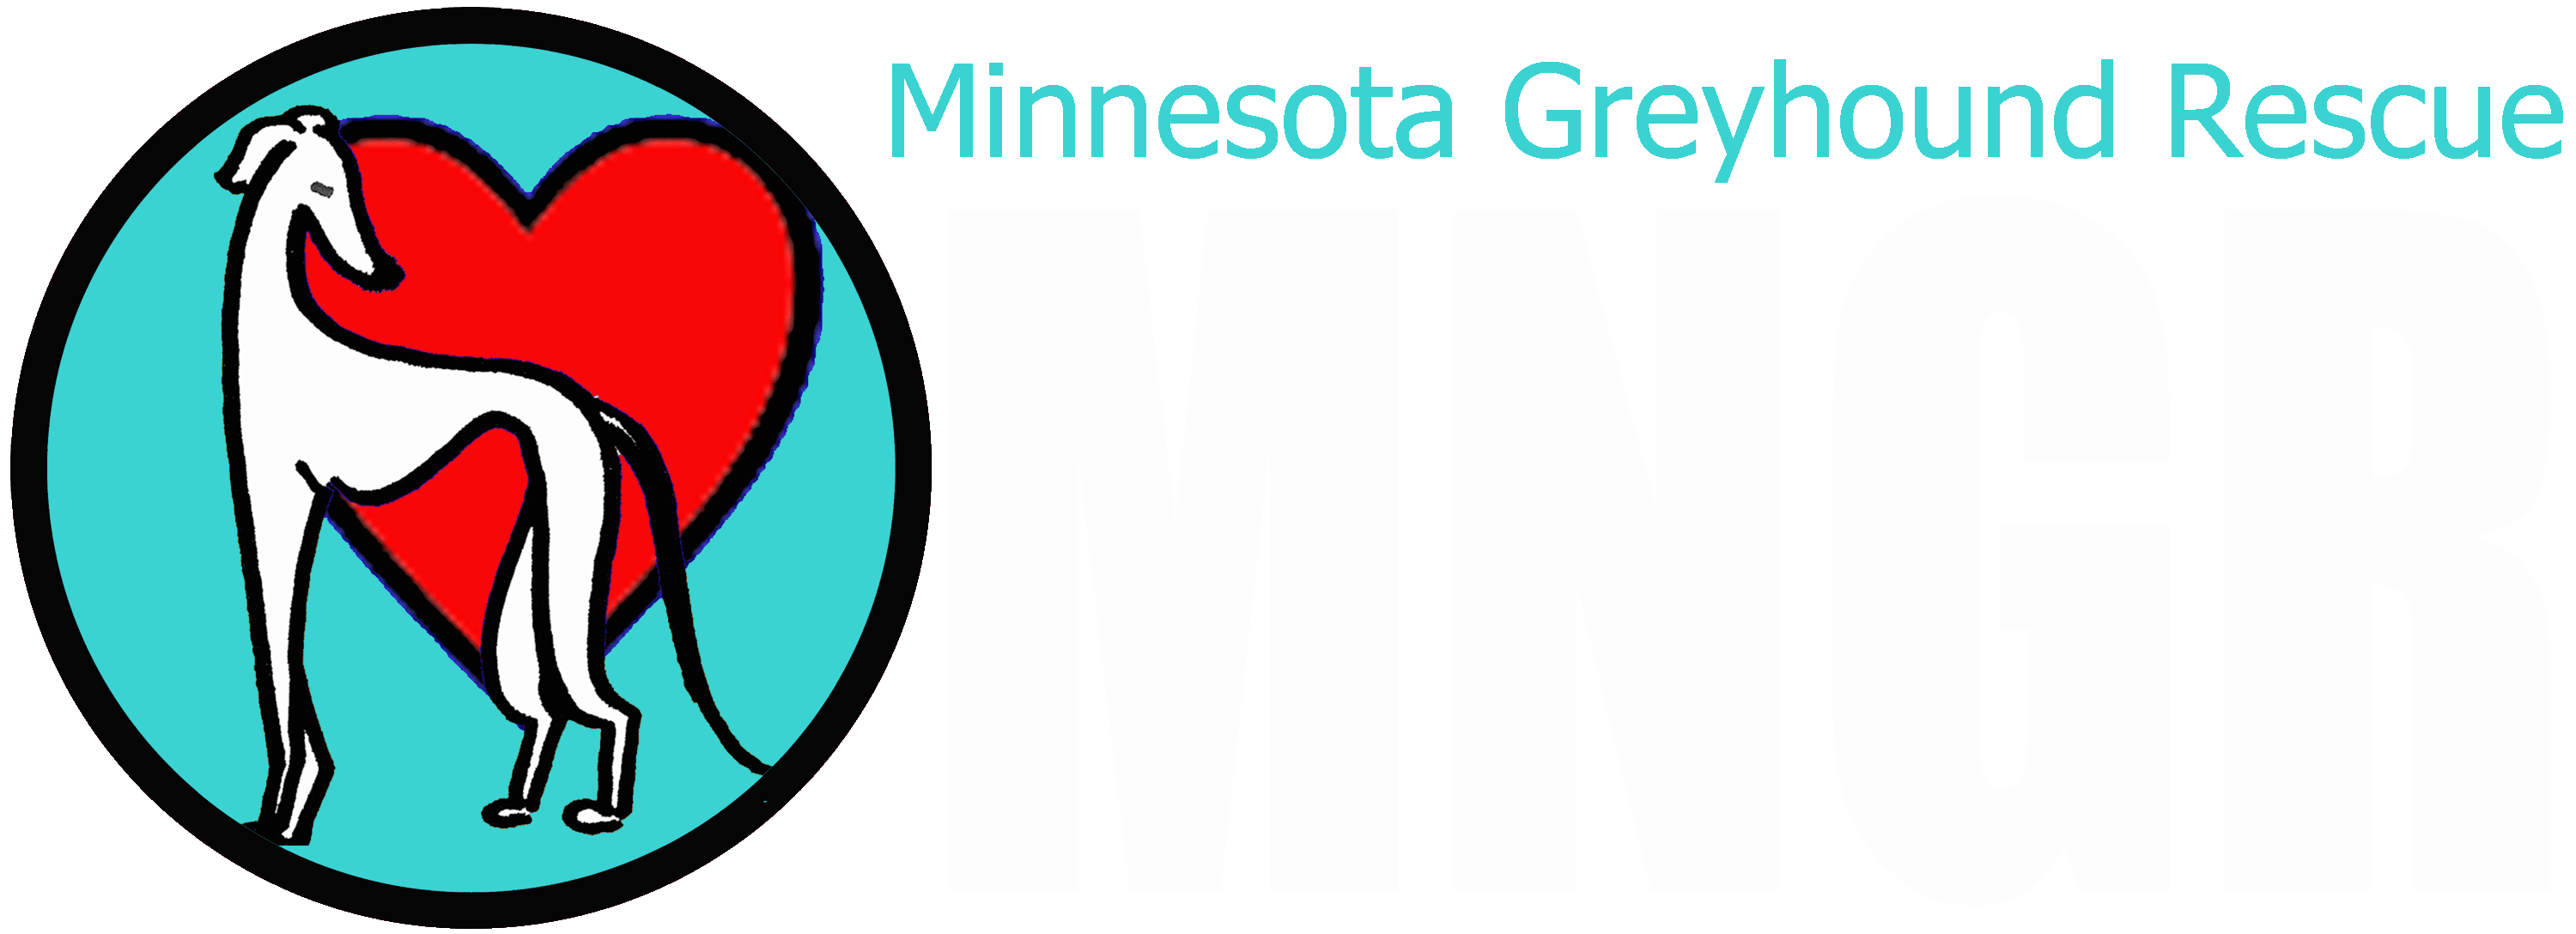 Minnesota Greyhound Rescue